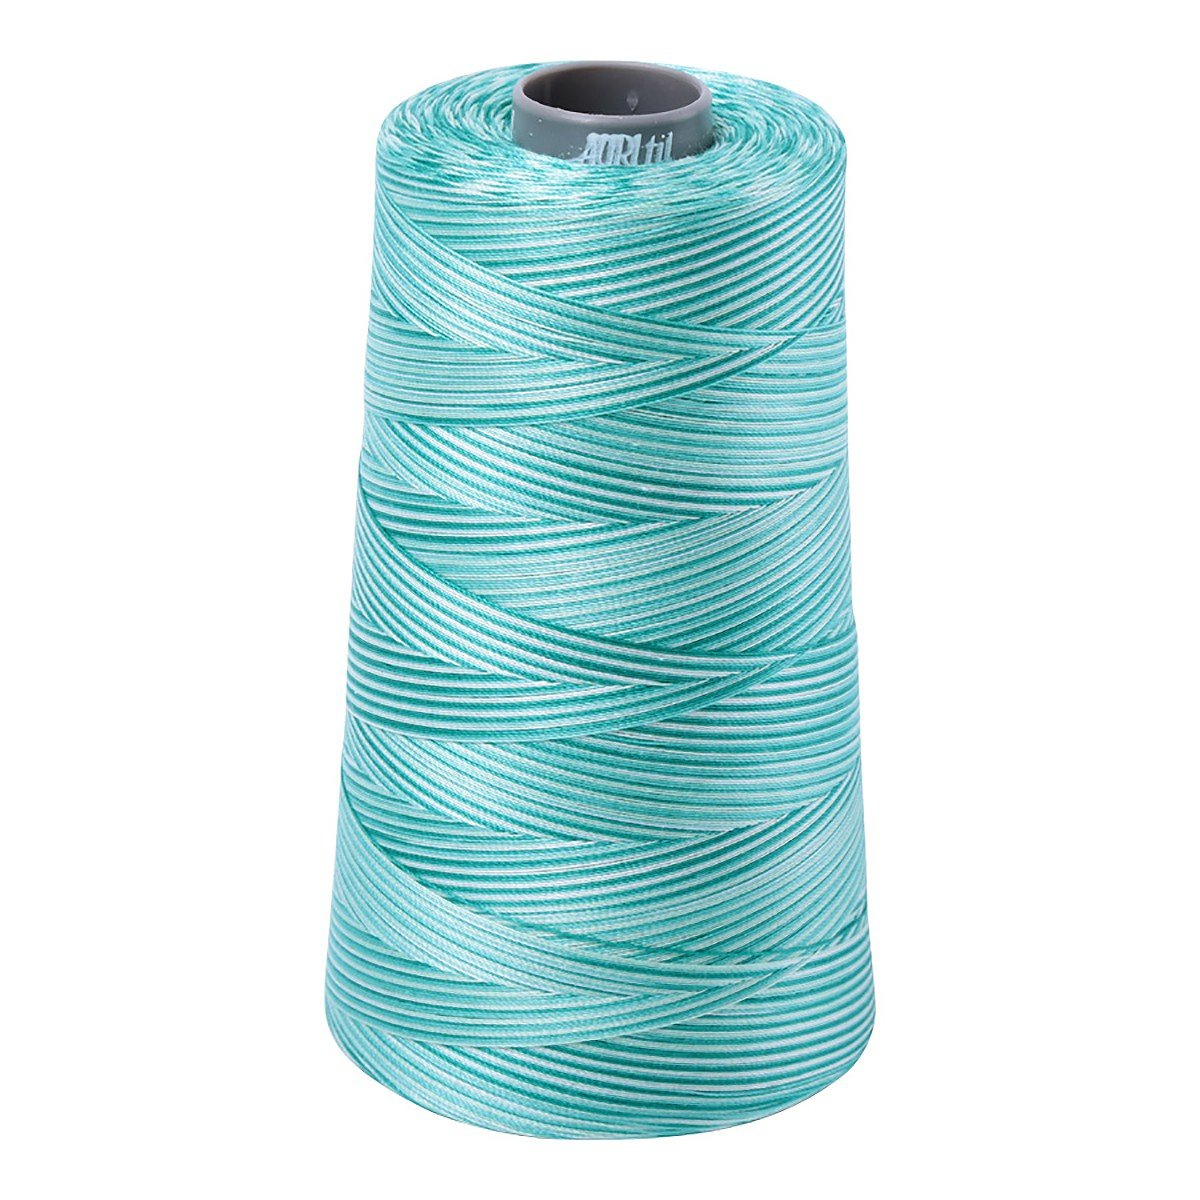 Mako (Cotton) Embroidery Thread 28wt 3609yds Variegated Turquoise Foam